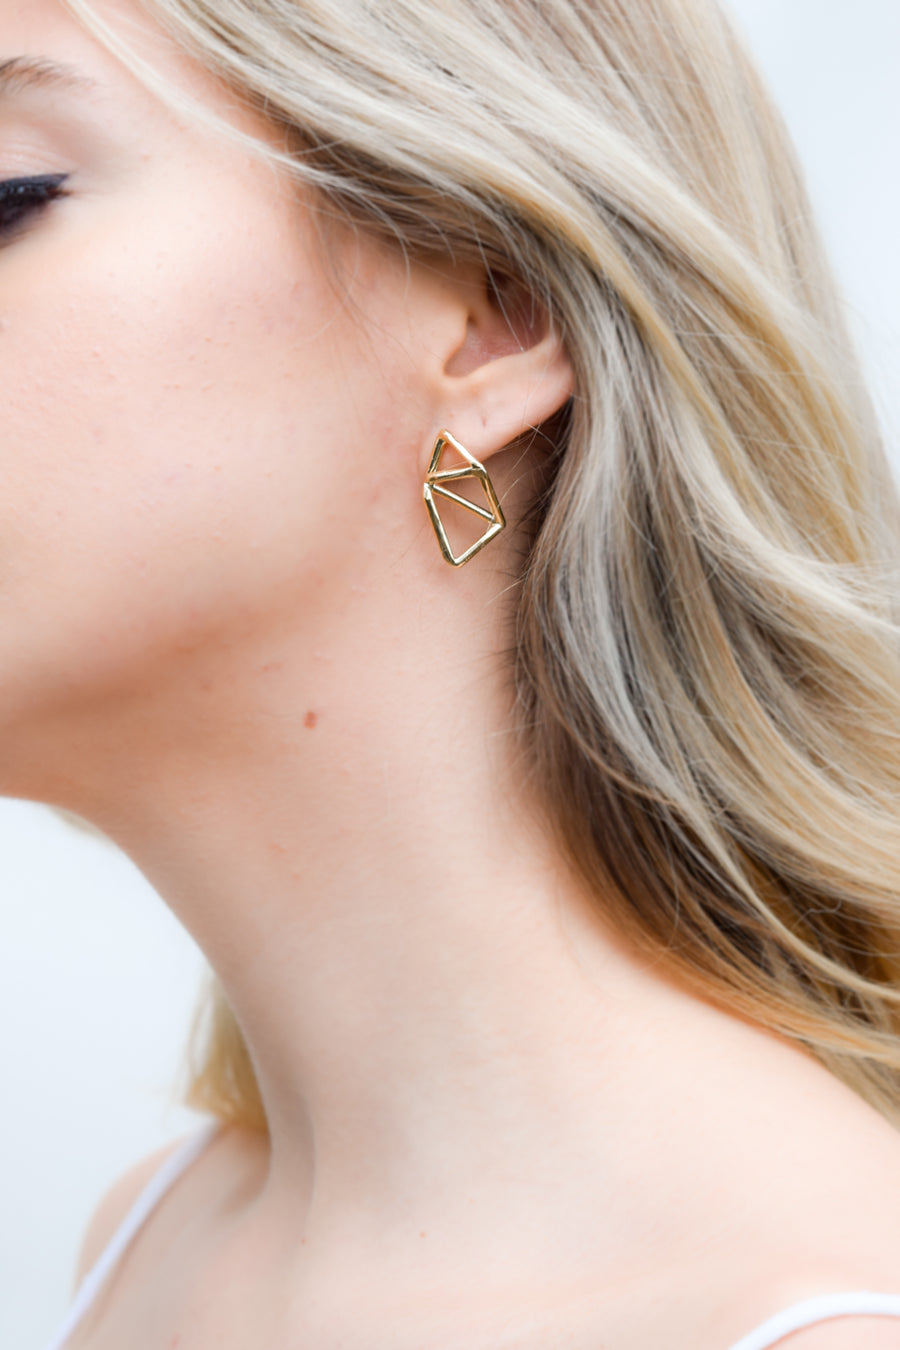 Bichito earring on model. 14k yellow gold uniquely asymmetrical earrings. Handmade by local jewelry designer, Nina Berenato, in Austin, Texas.